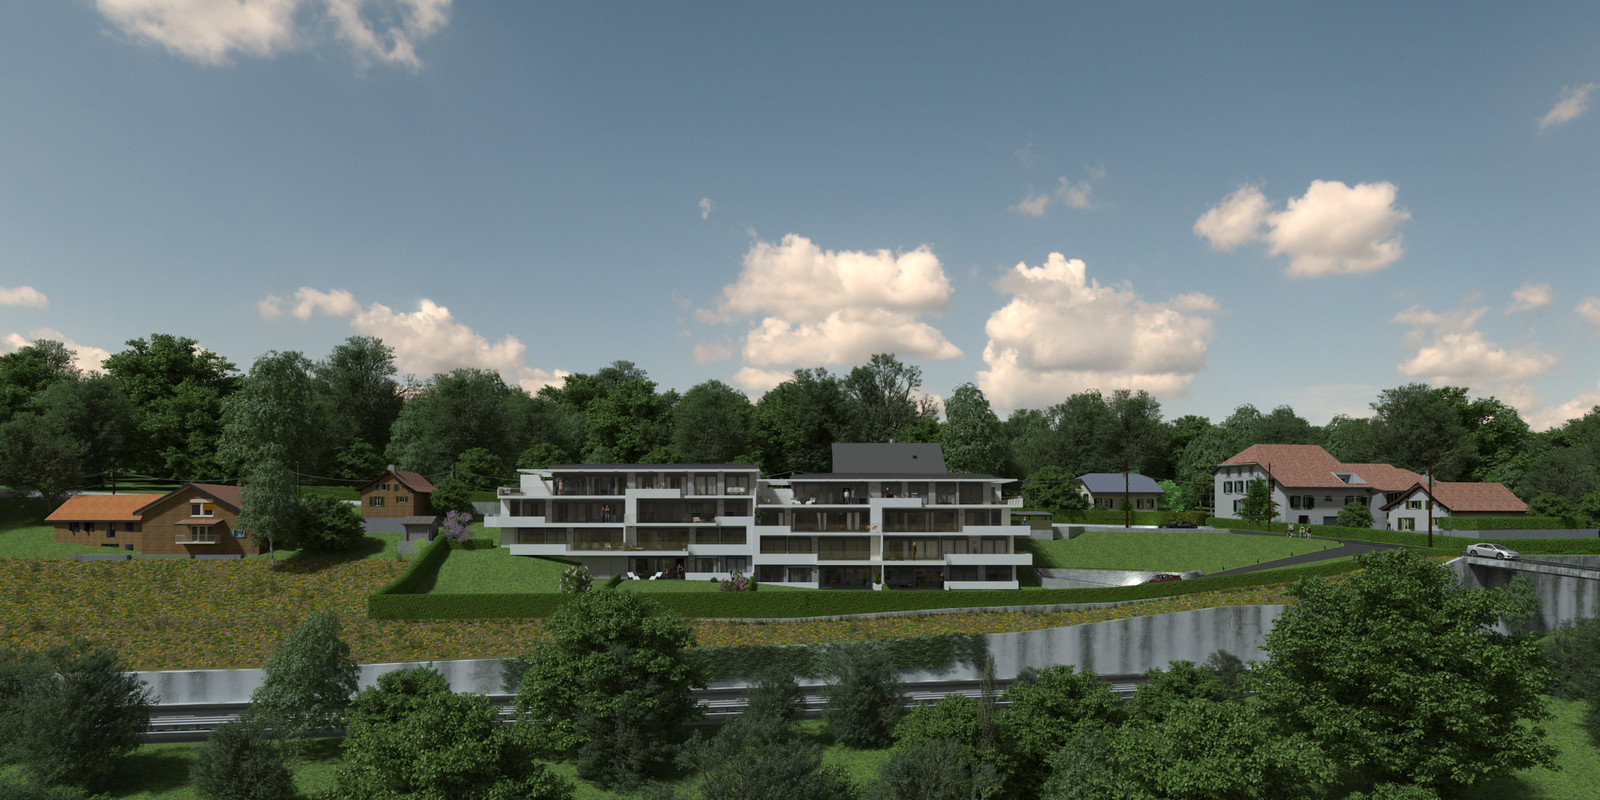 SketchUp 2018 + Thea Render  Project Lutry Thea Full work file 05 No Fog 2018-Scene 124 2 pt layers 309 hdr  HDR by HDRI-SKIES found here: http://hdri-skies.com/shop/hdri-sky-309/